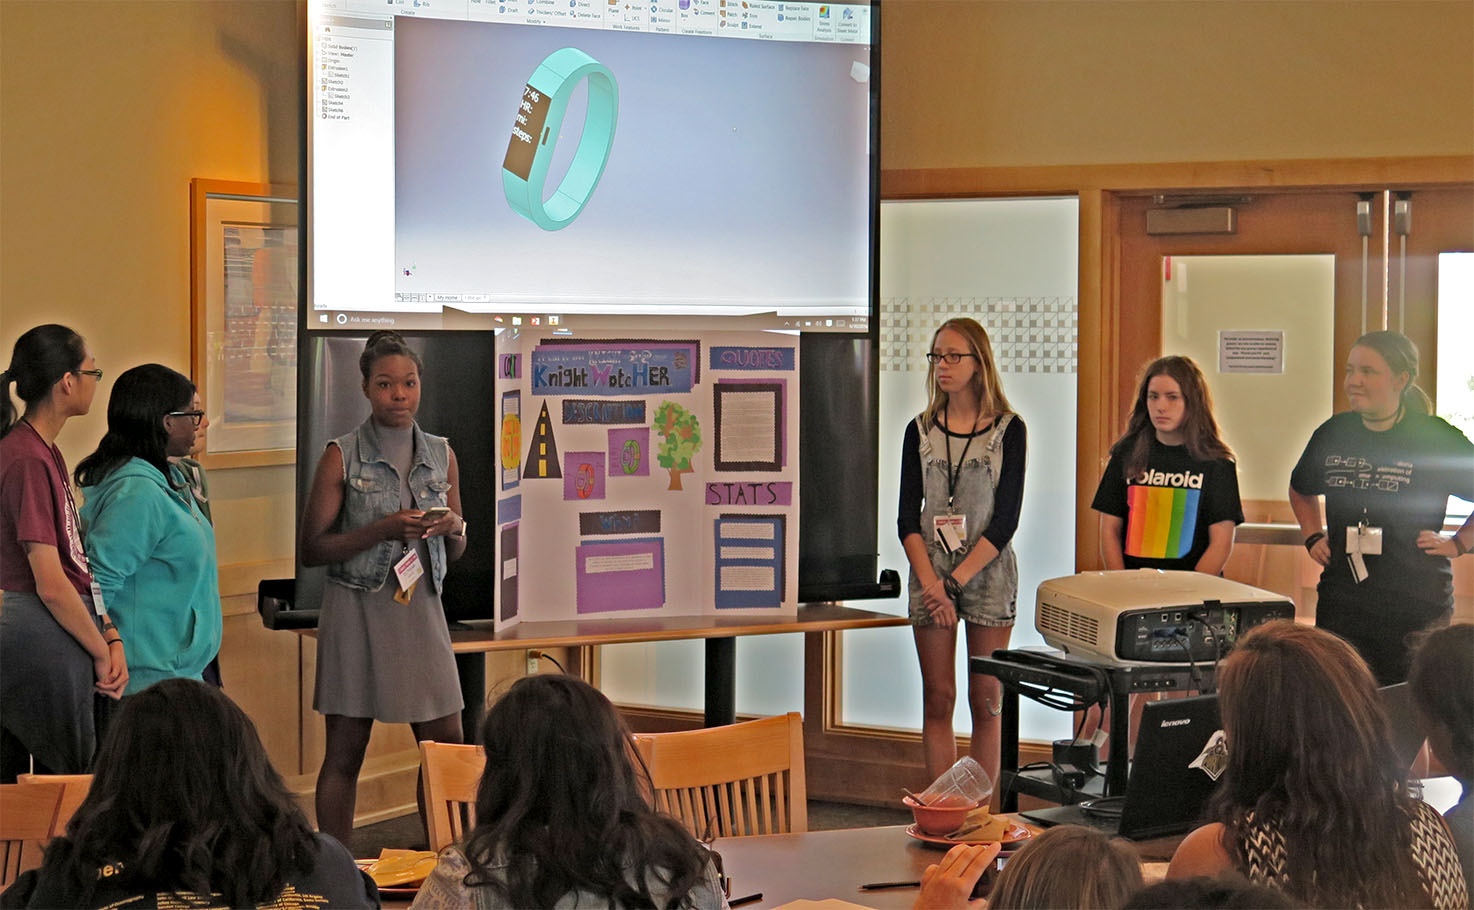 TEAM participants present their research, a project added by Danita Dolly, assistant director of retention and diversity, to provde focus and purpose to the experience.